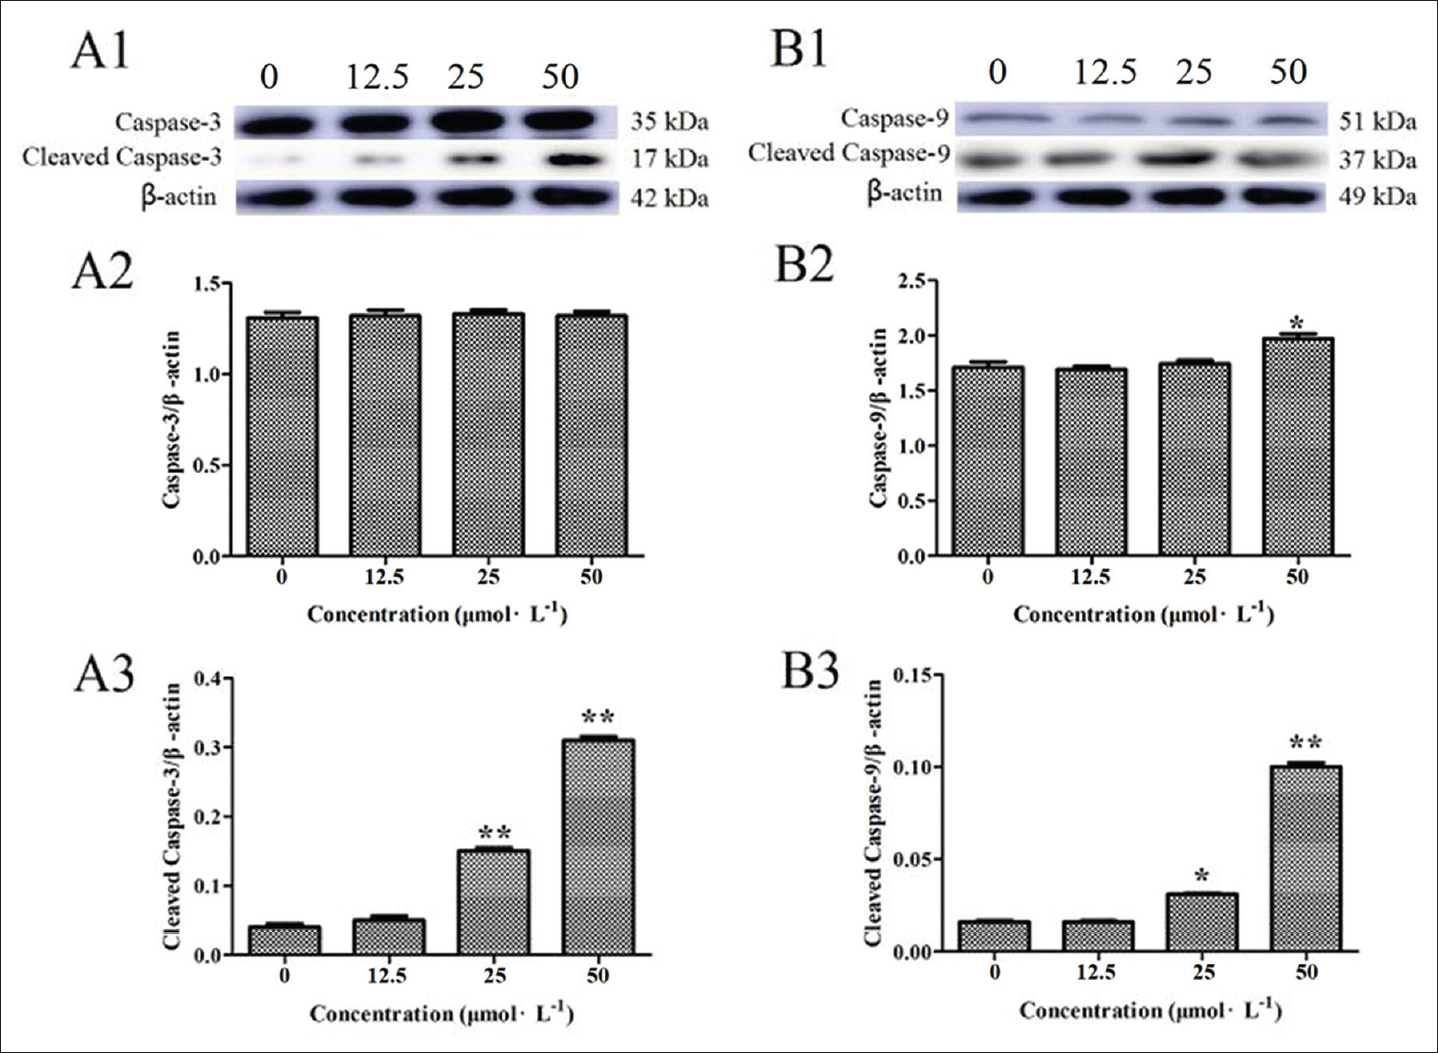 Figure 4: Effect of Juglone at different concentrations on the expression of caspase 3 (A1, A2)/9 (B1, B2) and cleaved caspase 3 (A3)/9 (B3) protein in Michigan Cancer Foundation-7 cells. The data were expressed as mean ± standard error per group. *<i>P</i> < 0.05 versus the blank group, **<i>P</i> < 0.01 versus the blank group